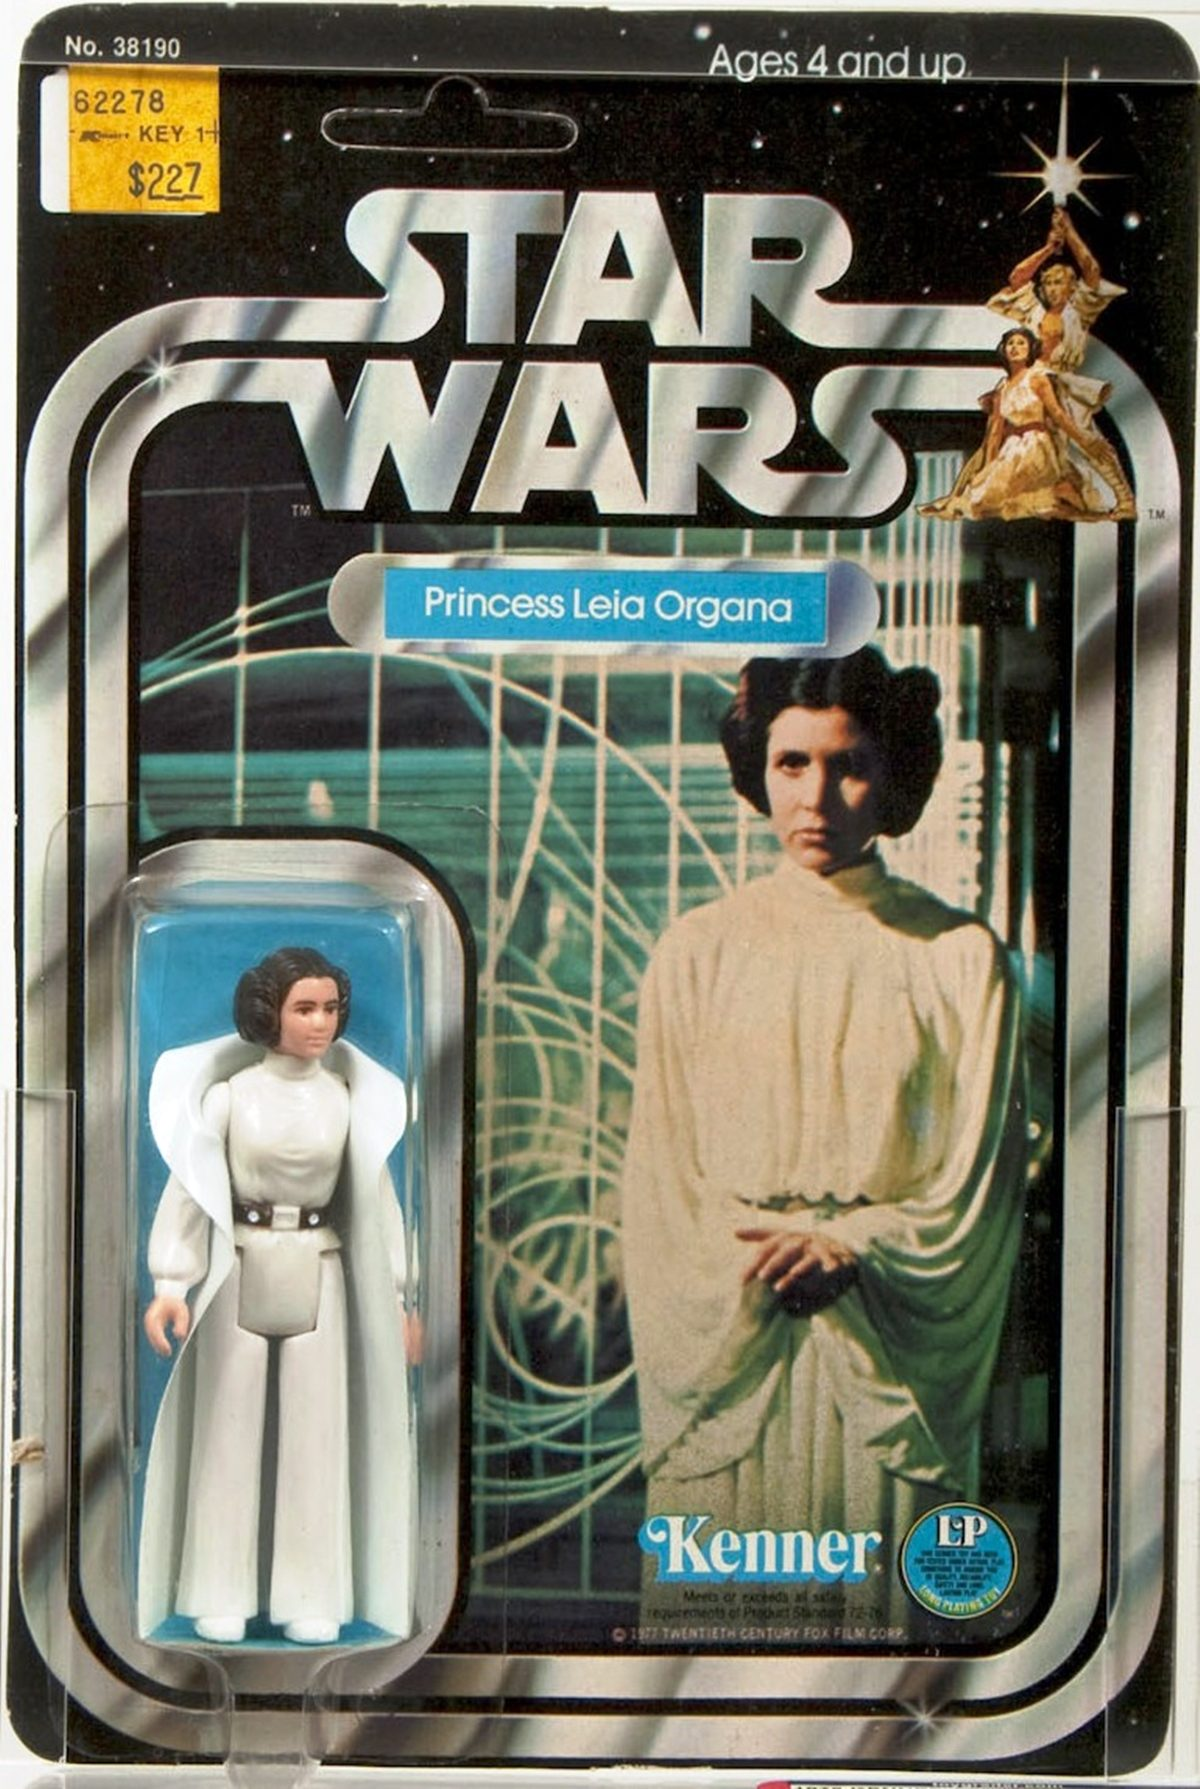 3 11 10 Star Wars Toys That Will Earn You A Fortune!